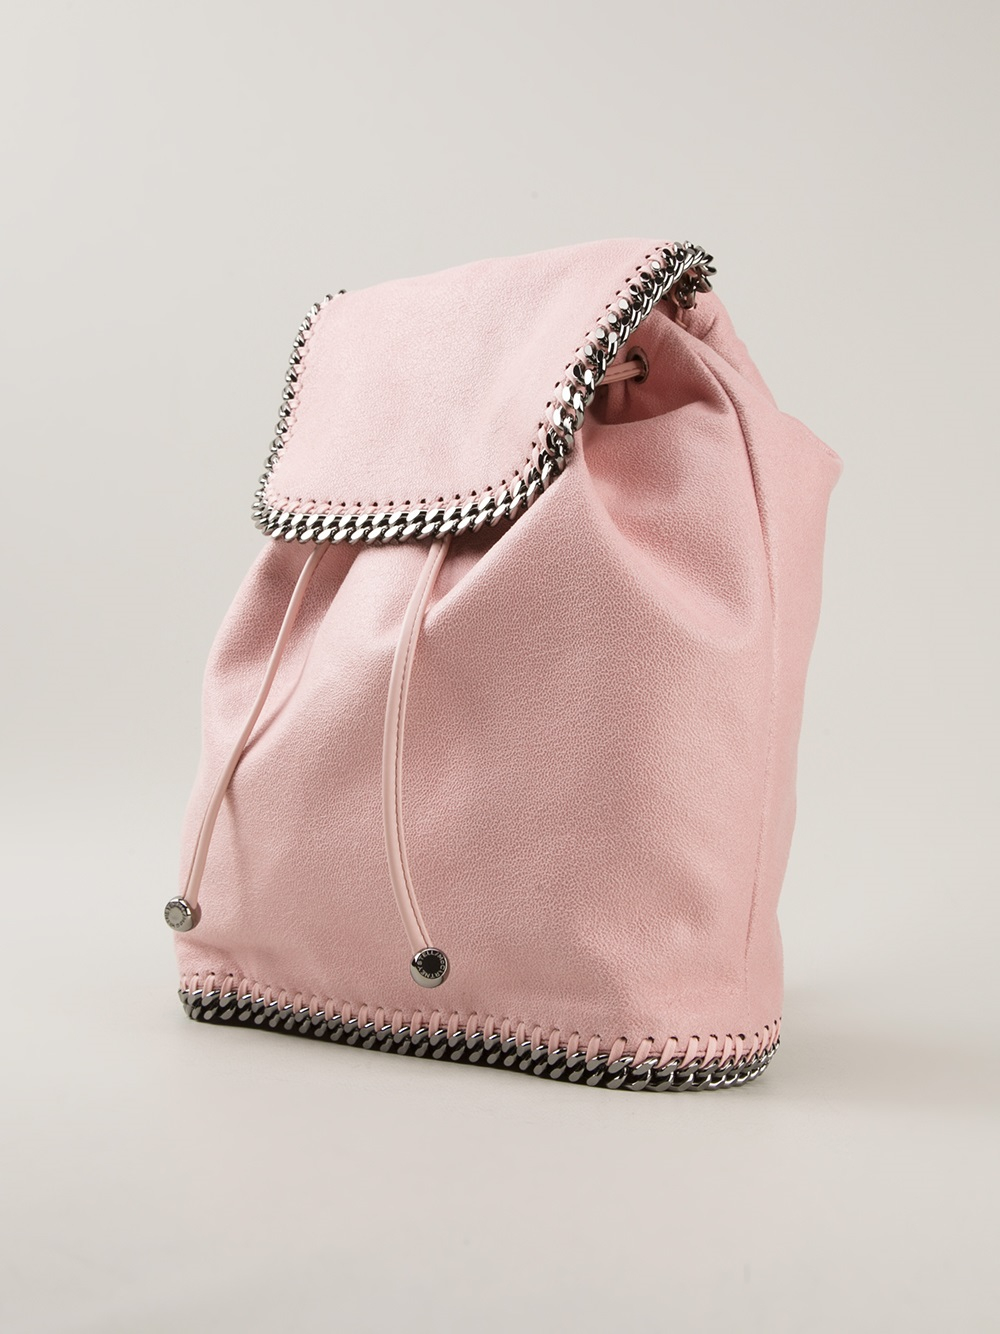 lyst stella mccartney falabella backpack in pink. Black Bedroom Furniture Sets. Home Design Ideas